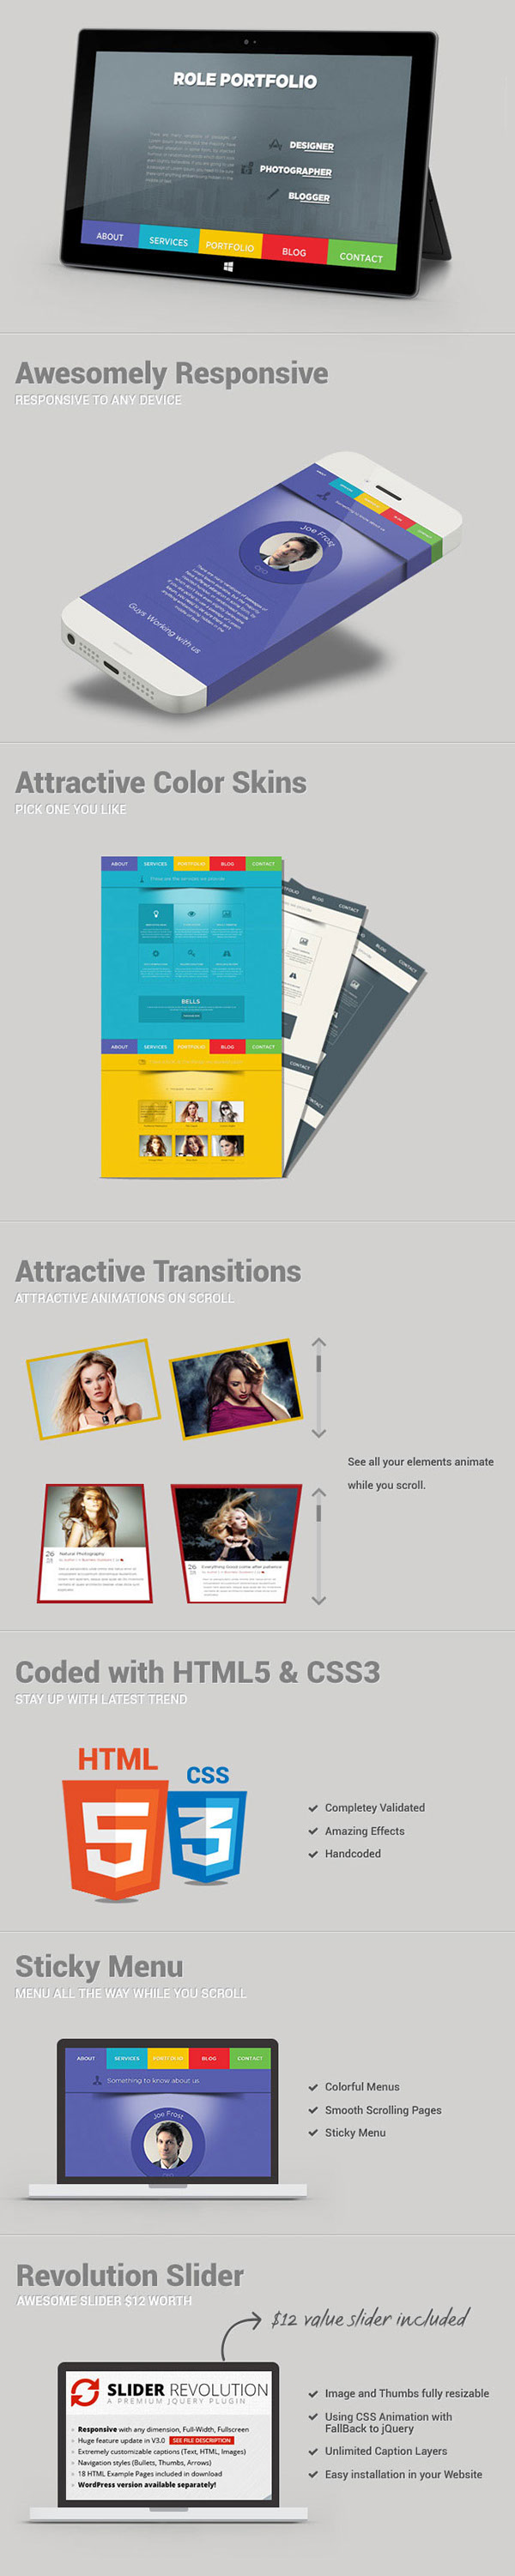 Role one page portfolio html5 template on pantone canvas for Page 3 salon coimbatore